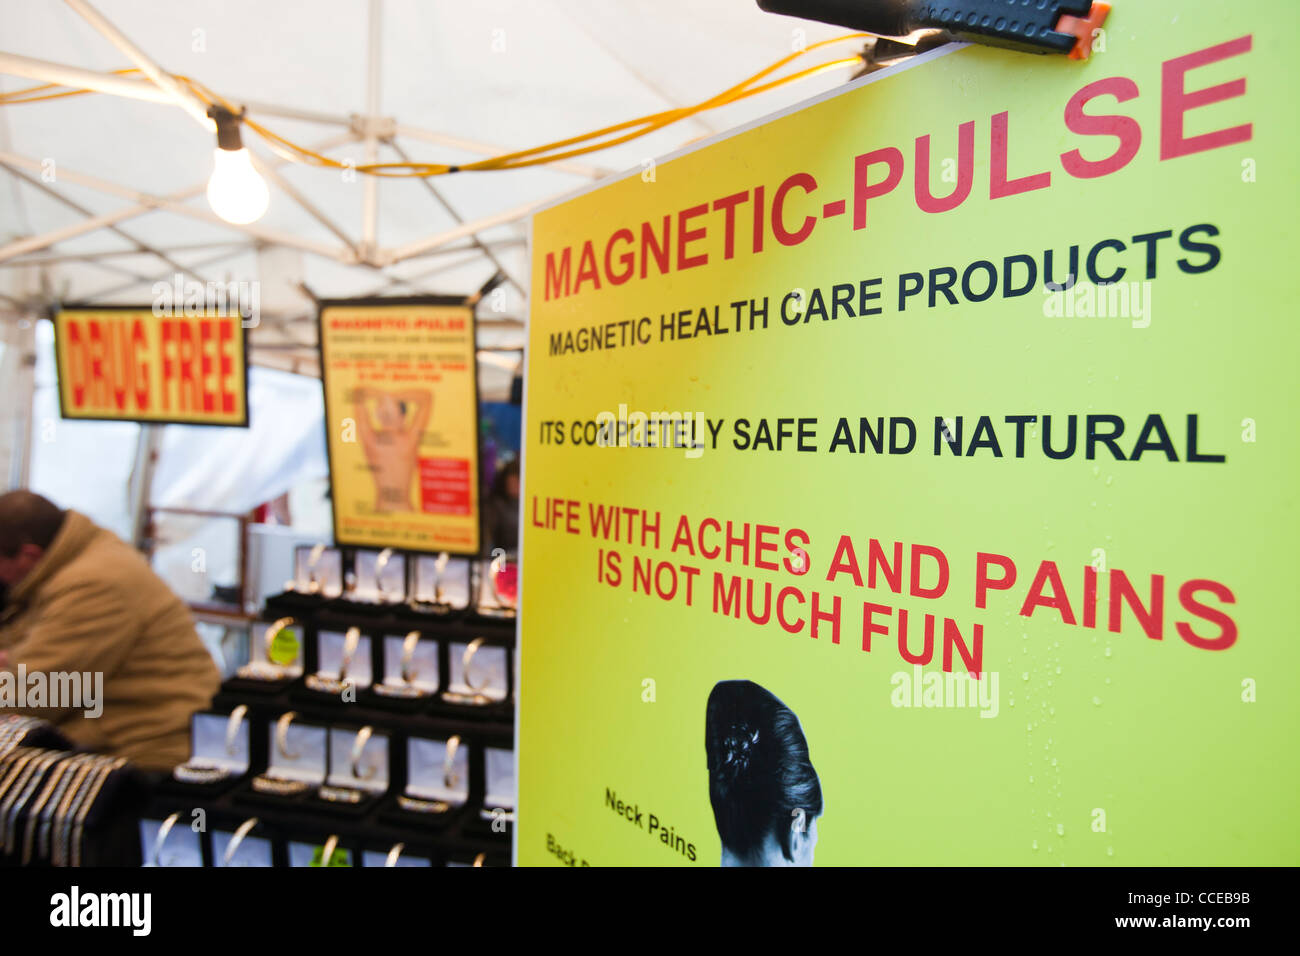 Magnetic pulse health devices for sale on Keswick market, Cumbria, UK, - Stock Image